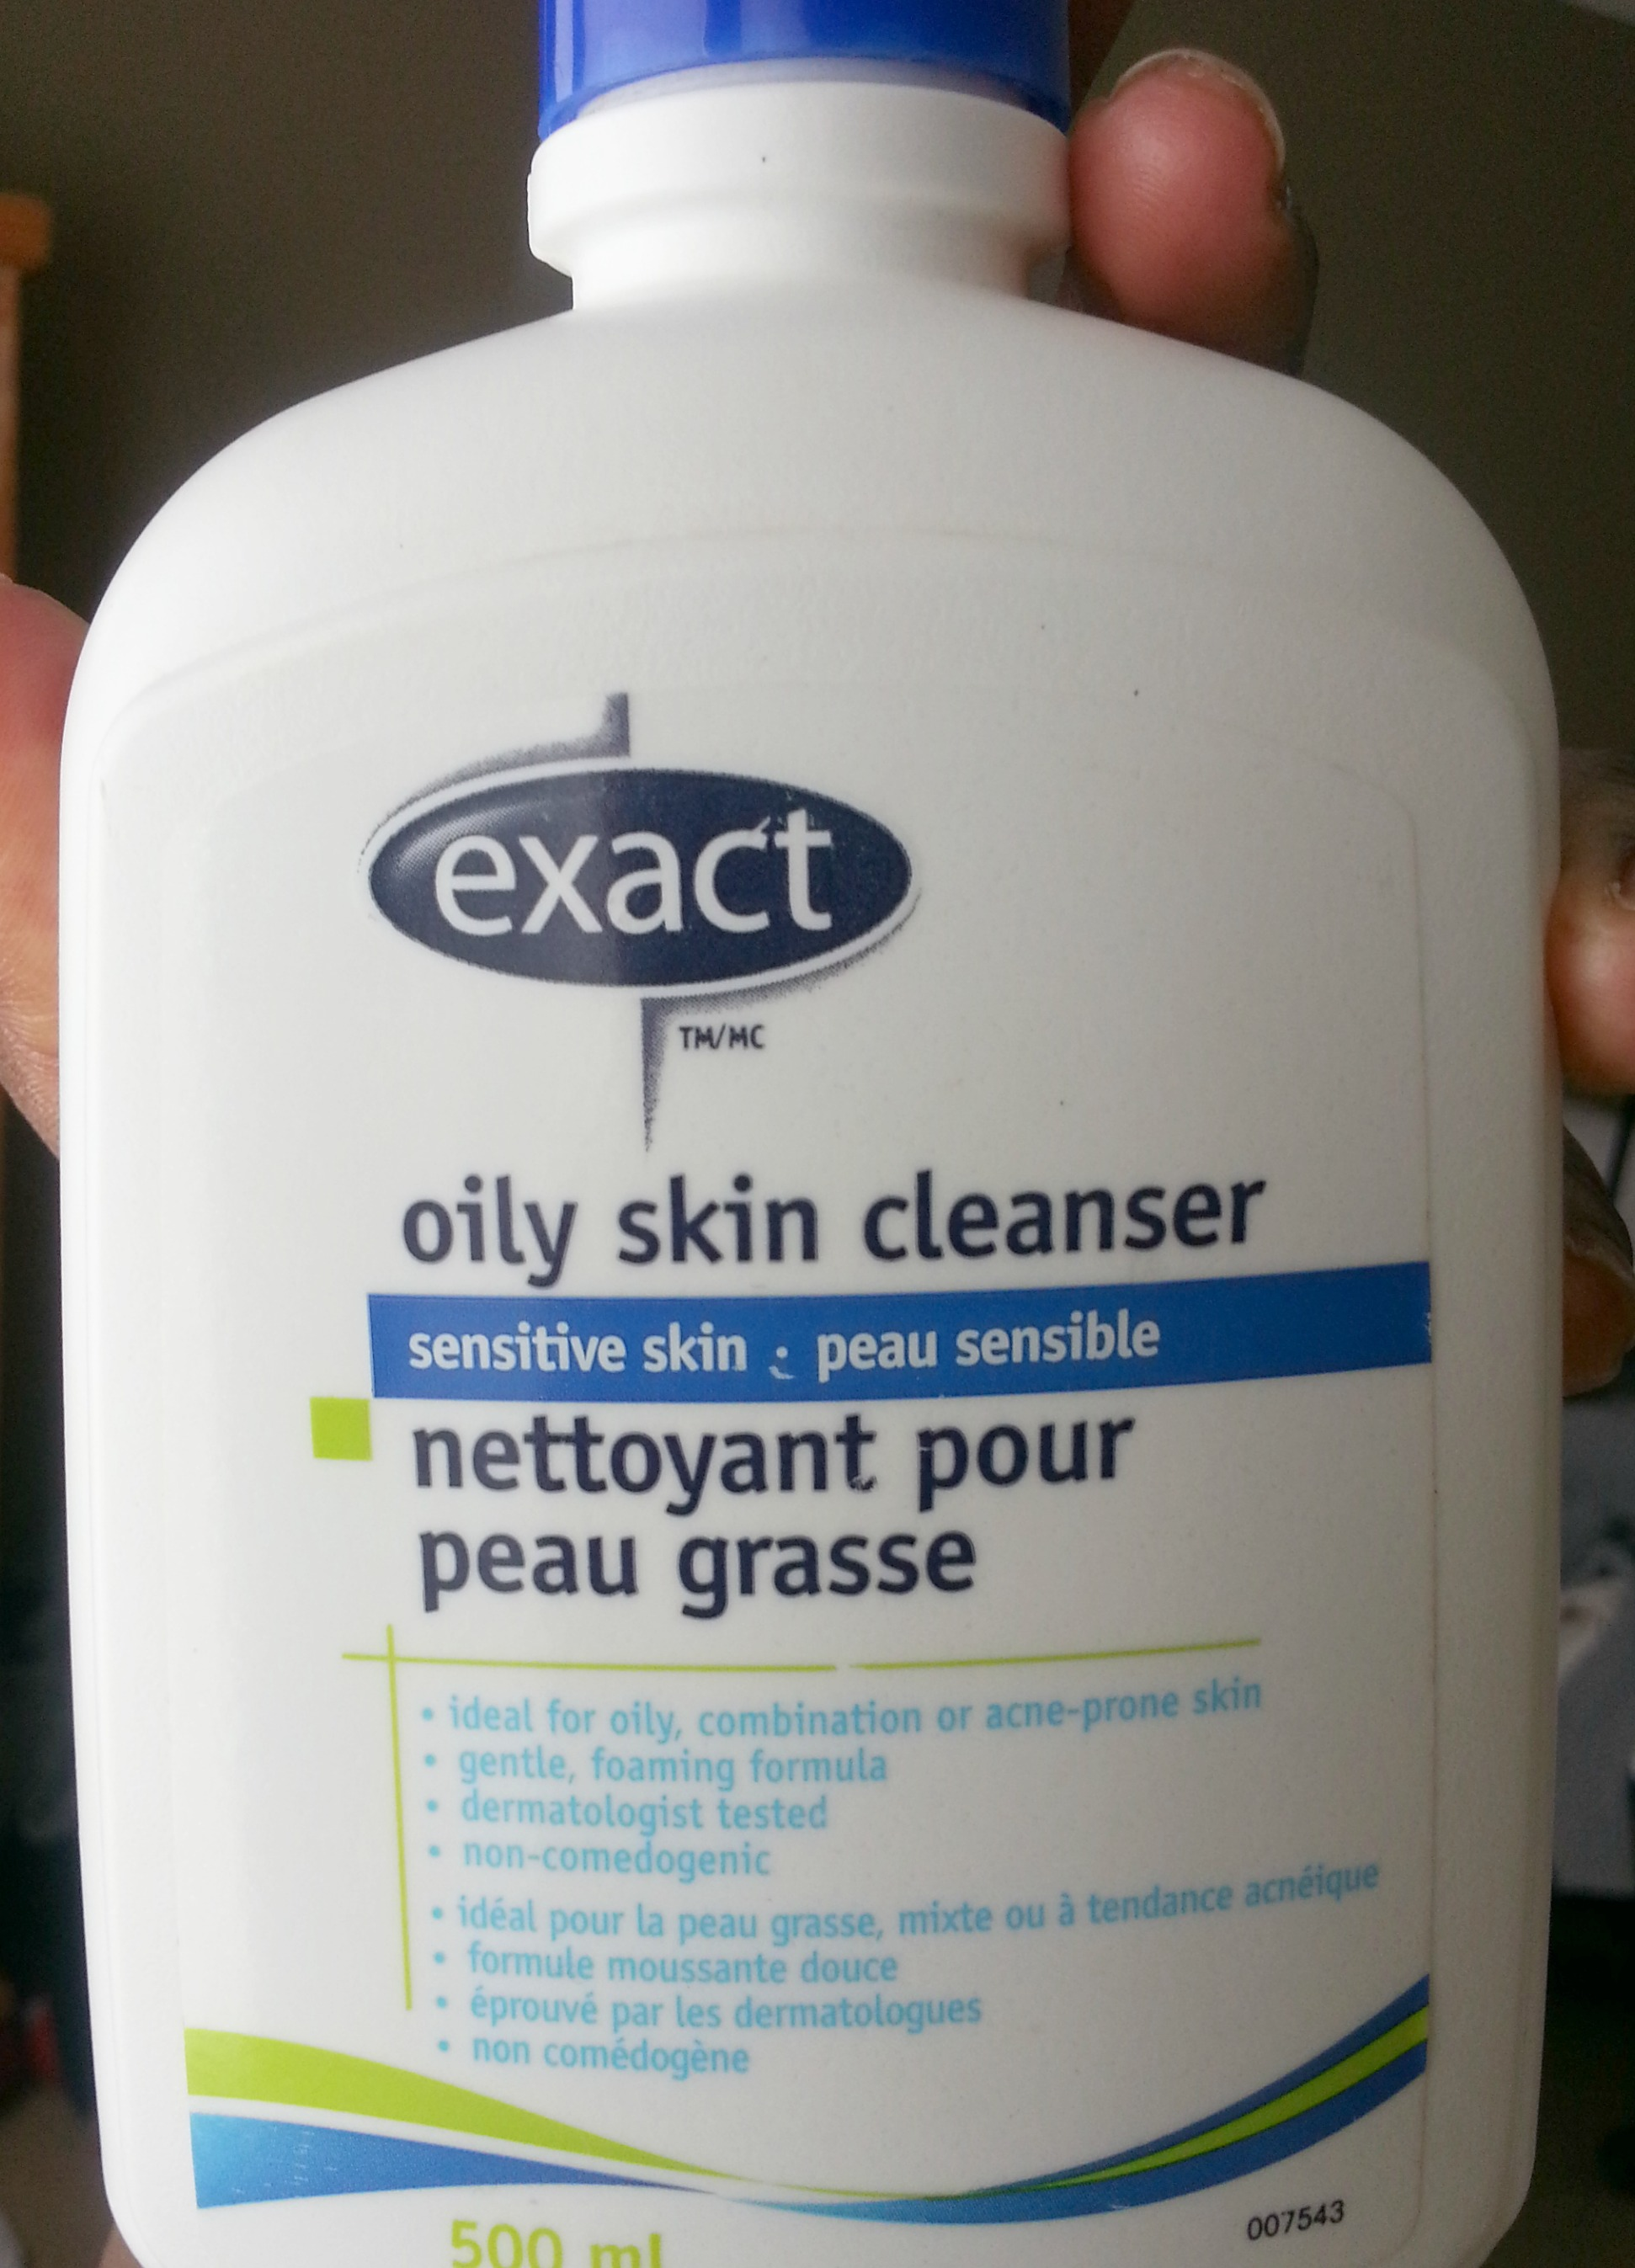 A Good Cleanser for oily/acne prone skin - by Exact